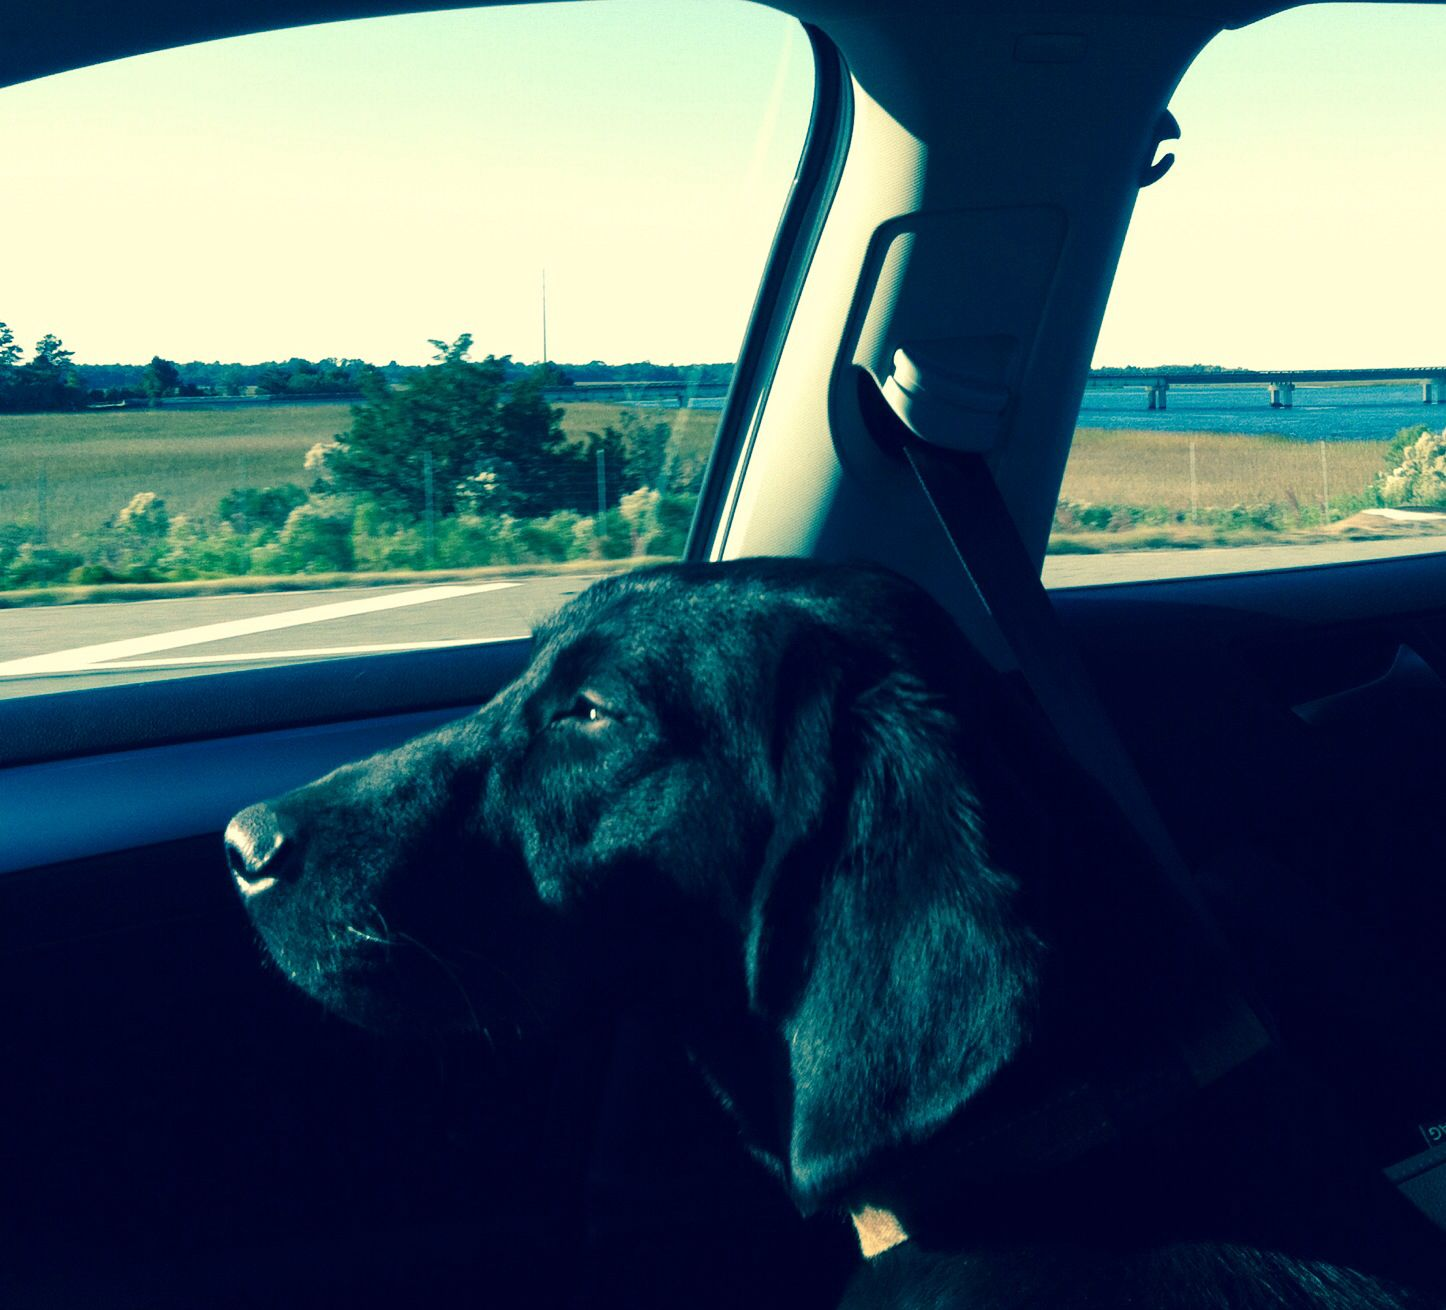 Captain in deep thought #doglife #blacklab #hounddog